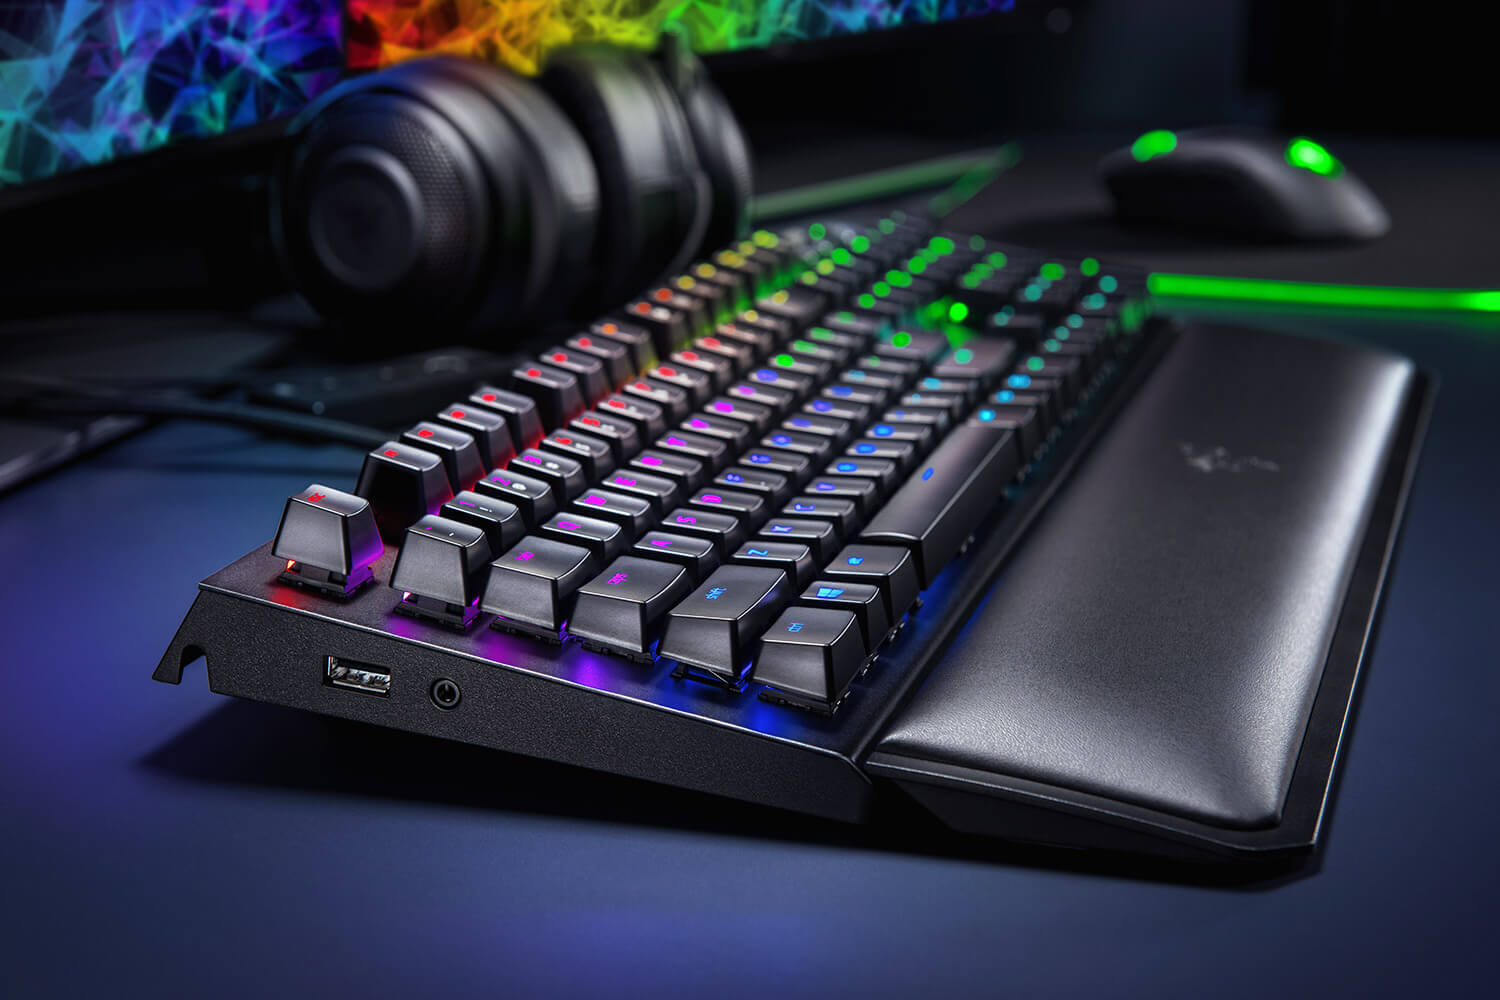 2019's Best Gaming Keyboard, Razer's Blackwidow Elite Mechanical Keyboard Is On Sale At 32% Off